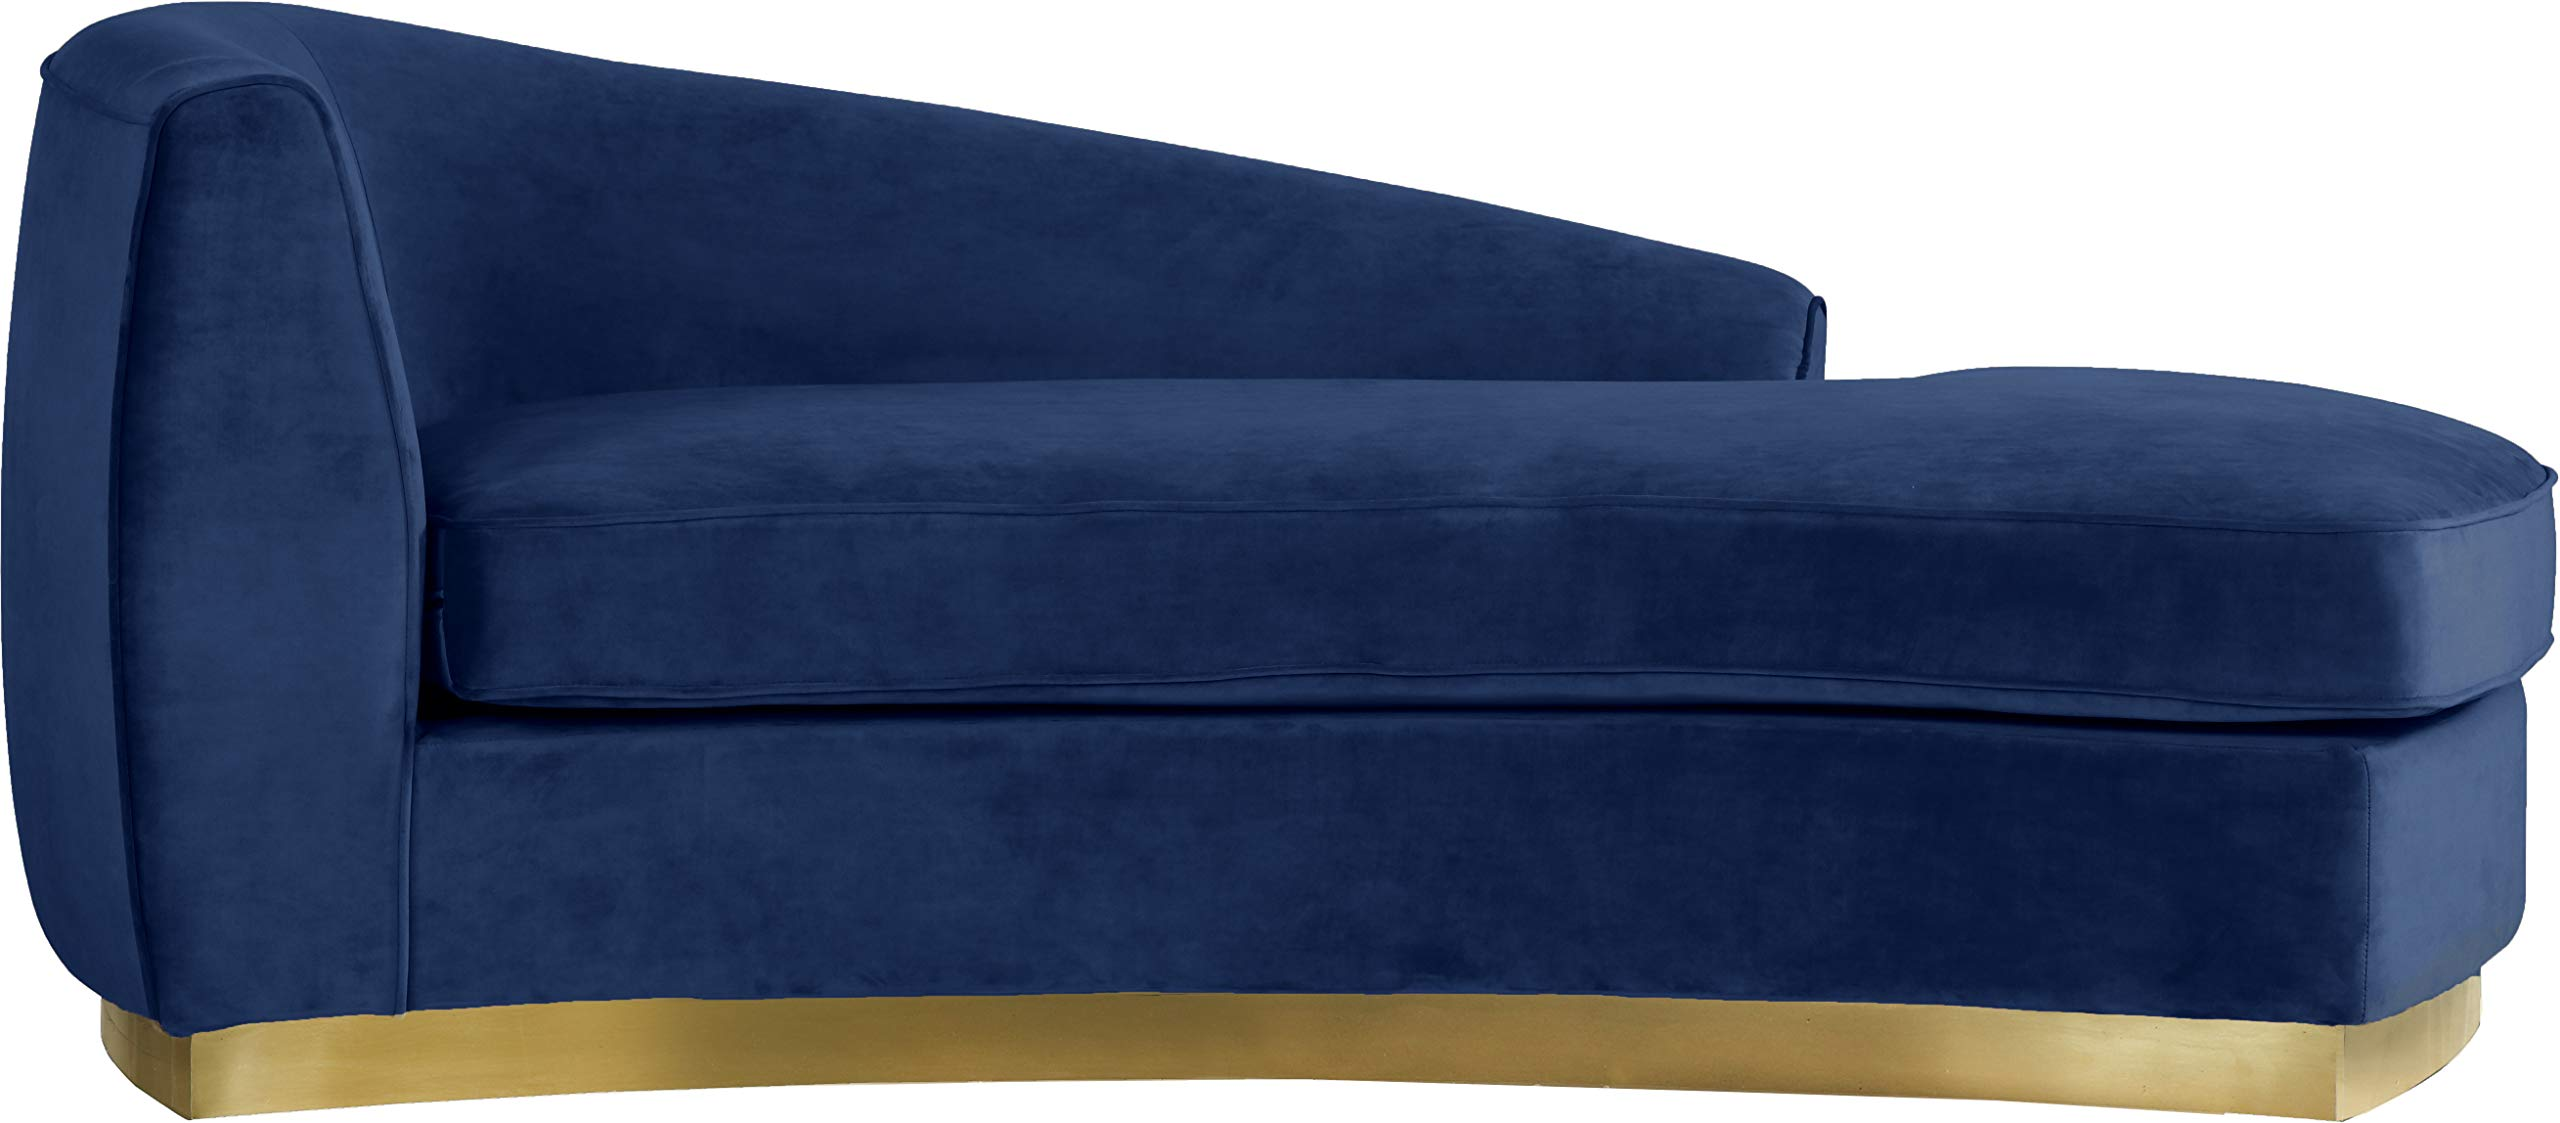 Meridian Furniture Julian Collection Modern | Contemporary Navy Velvet Upholstered Chaise with Stainless Steel Base in a Rich Gold Finish, 70'' W x 39'' D x 28'' H, by Meridian Furniture